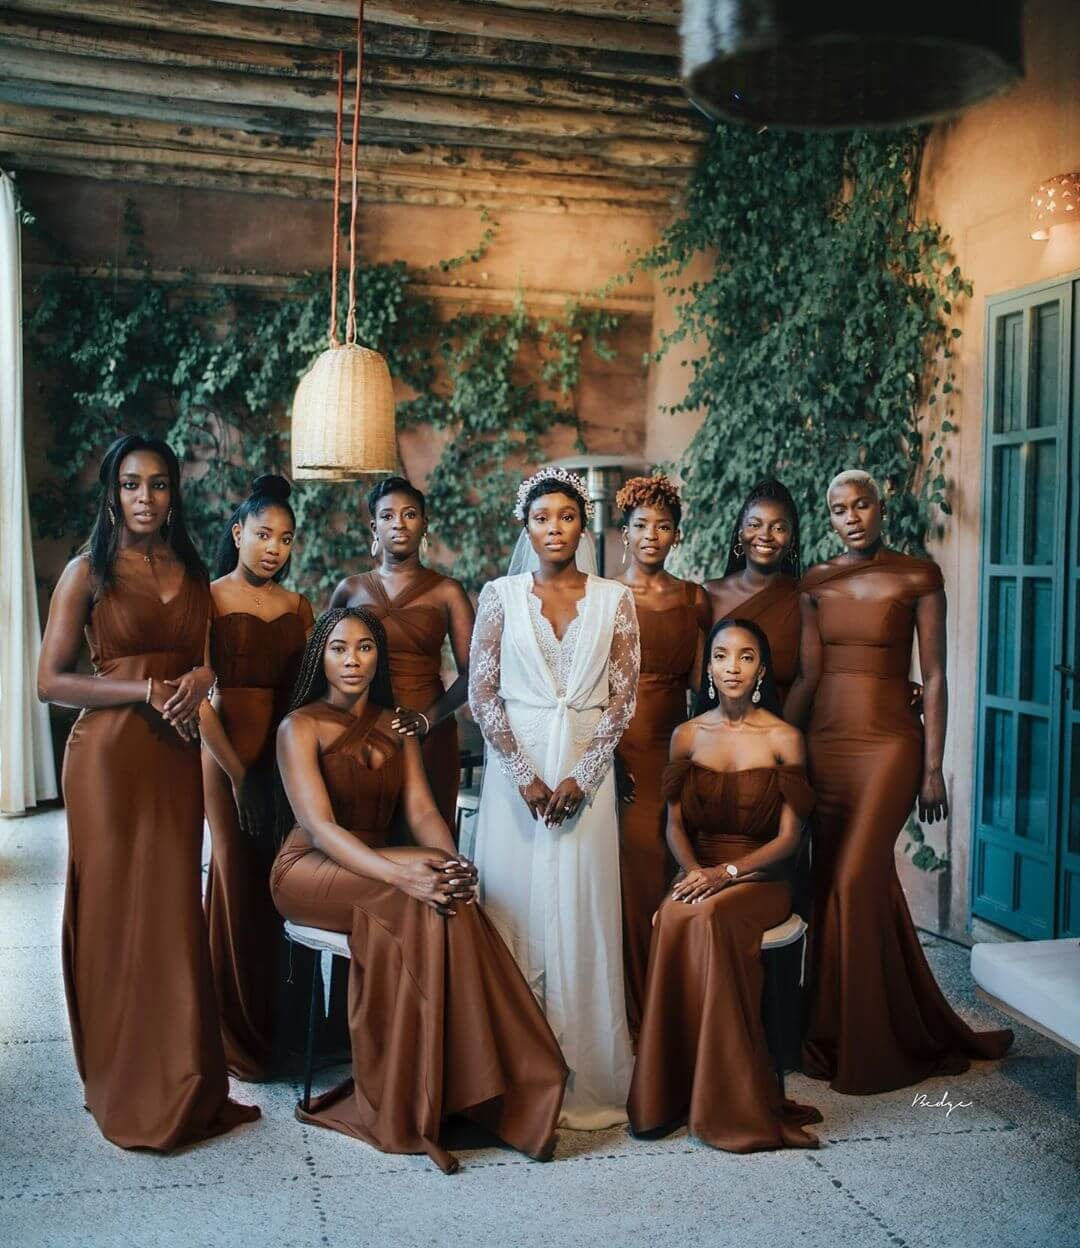 25 Perfete Fall Bridesmaid Dresses That Will Drop Jaws Perfete Fall Bridesmaid Dresses Brown Bridesmaid Dresses Fall Bridesmaids [ 1248 x 1080 Pixel ]